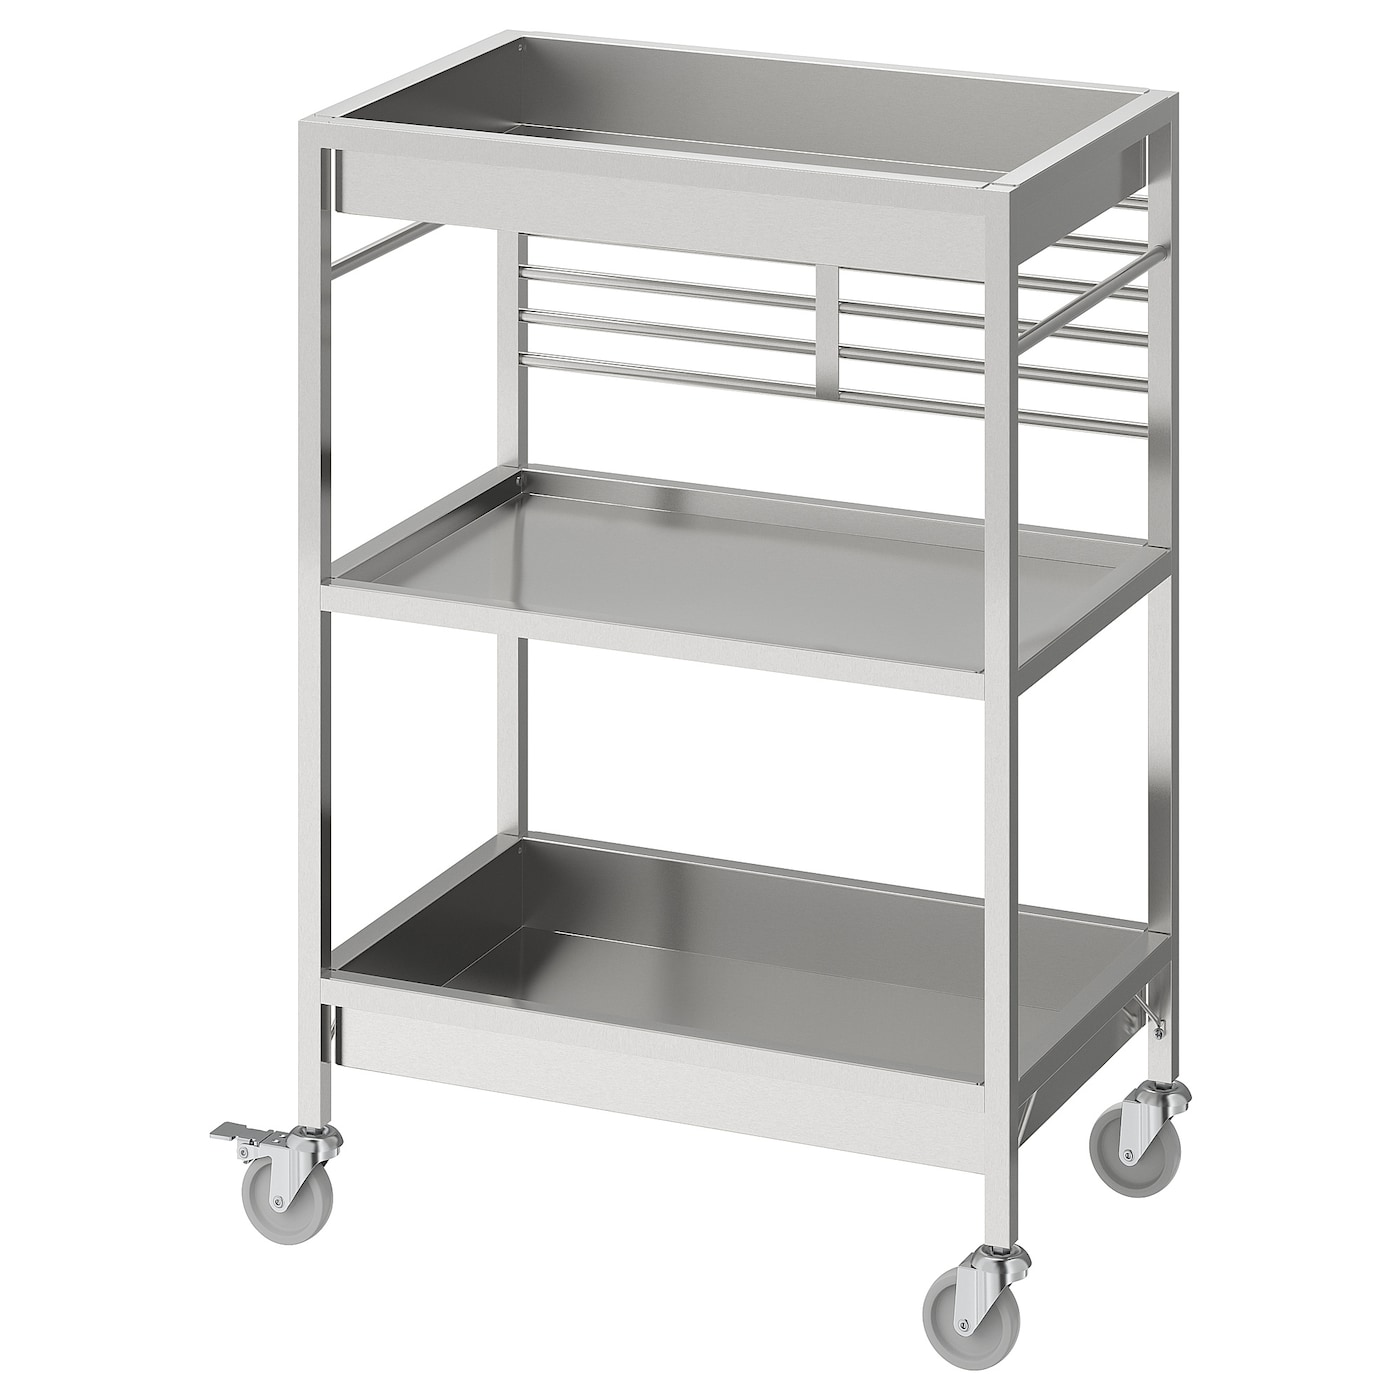 KUNGSFORS Kitchen trolley - stainless steel 8x8 cm